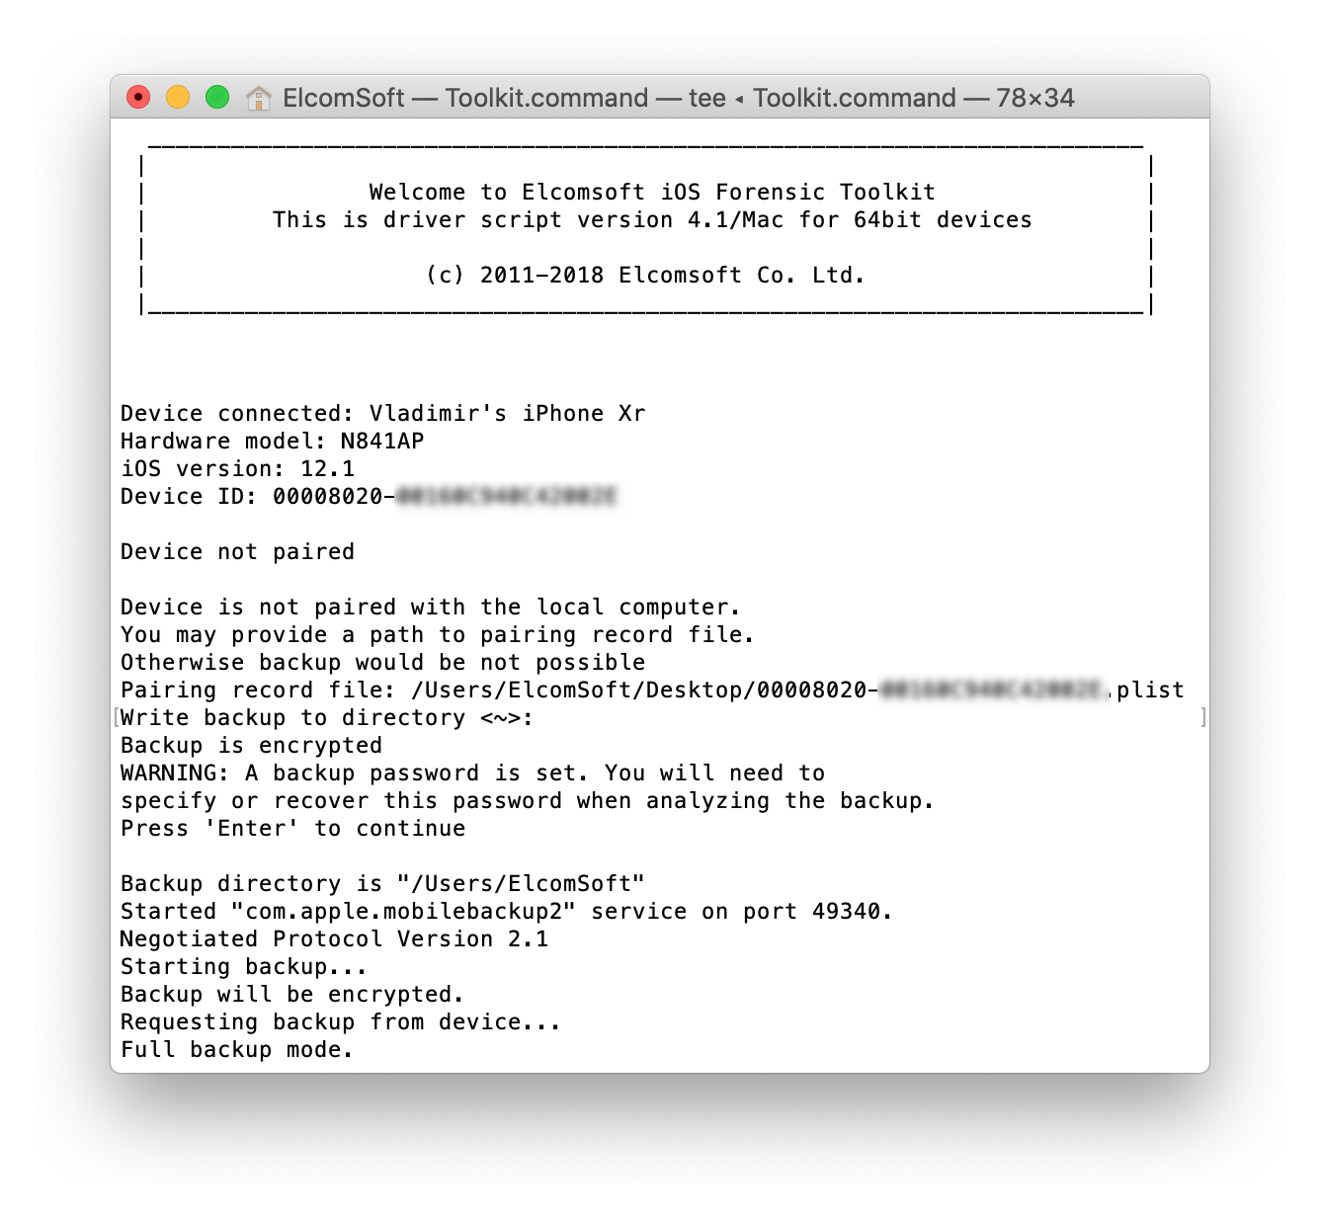 Elcomsoft's iOS Forensic Toolkit interface